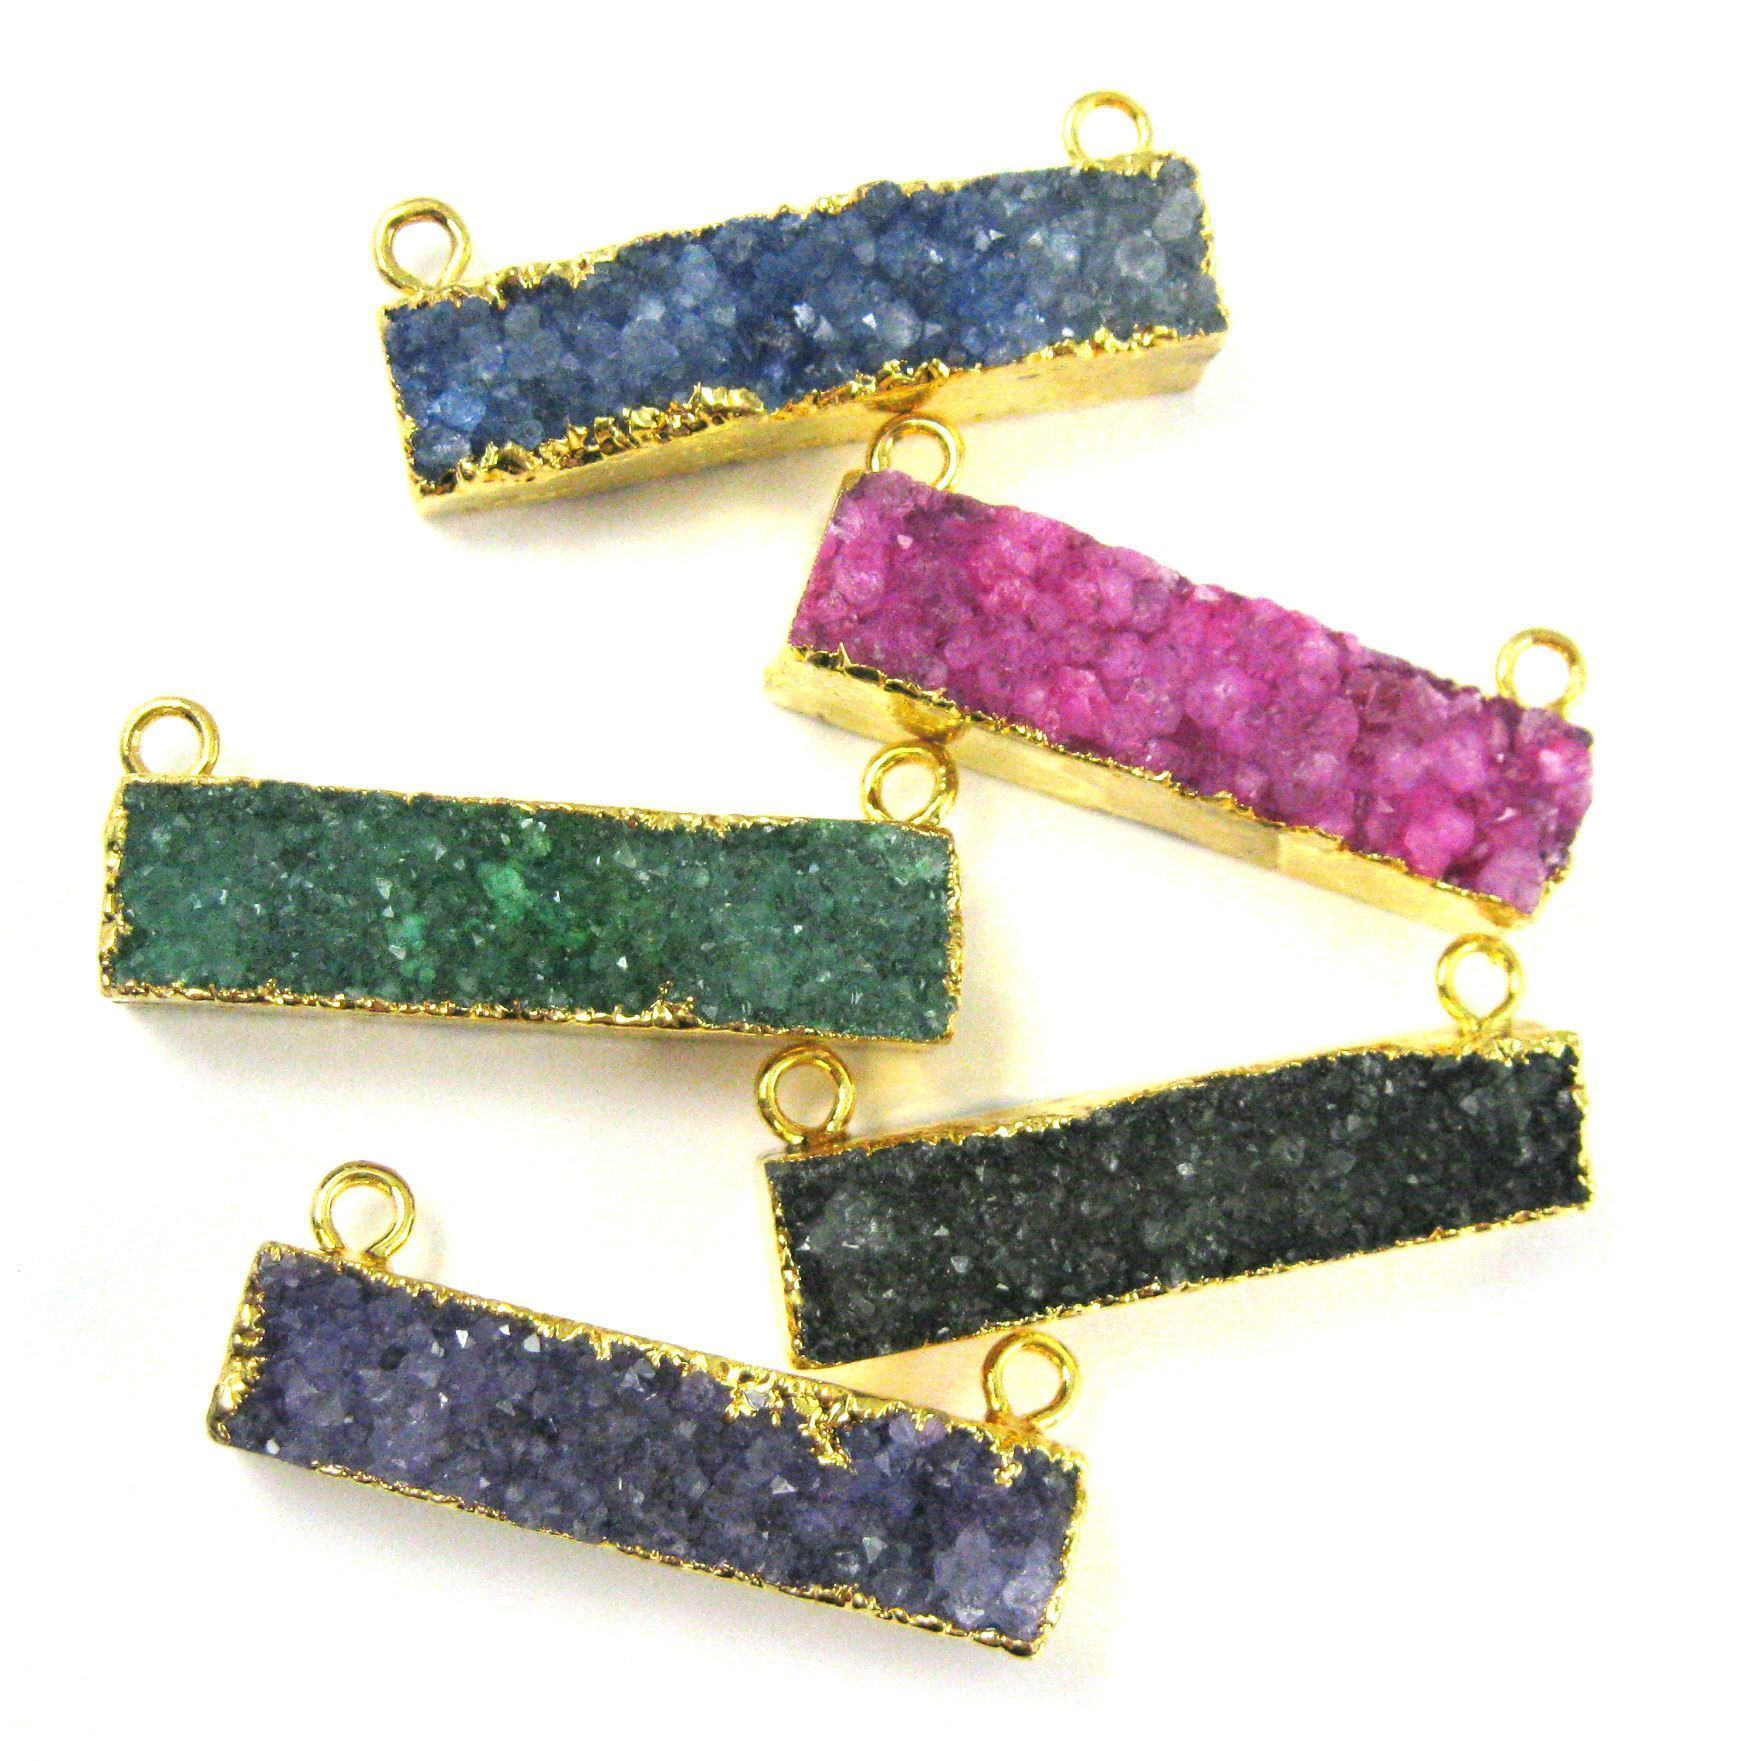 Druzy Gemstone Bar Pendant, Natural Rainbow Agate Gold Dipped Connector Pendant, Top Rings - Green Agate -35mm